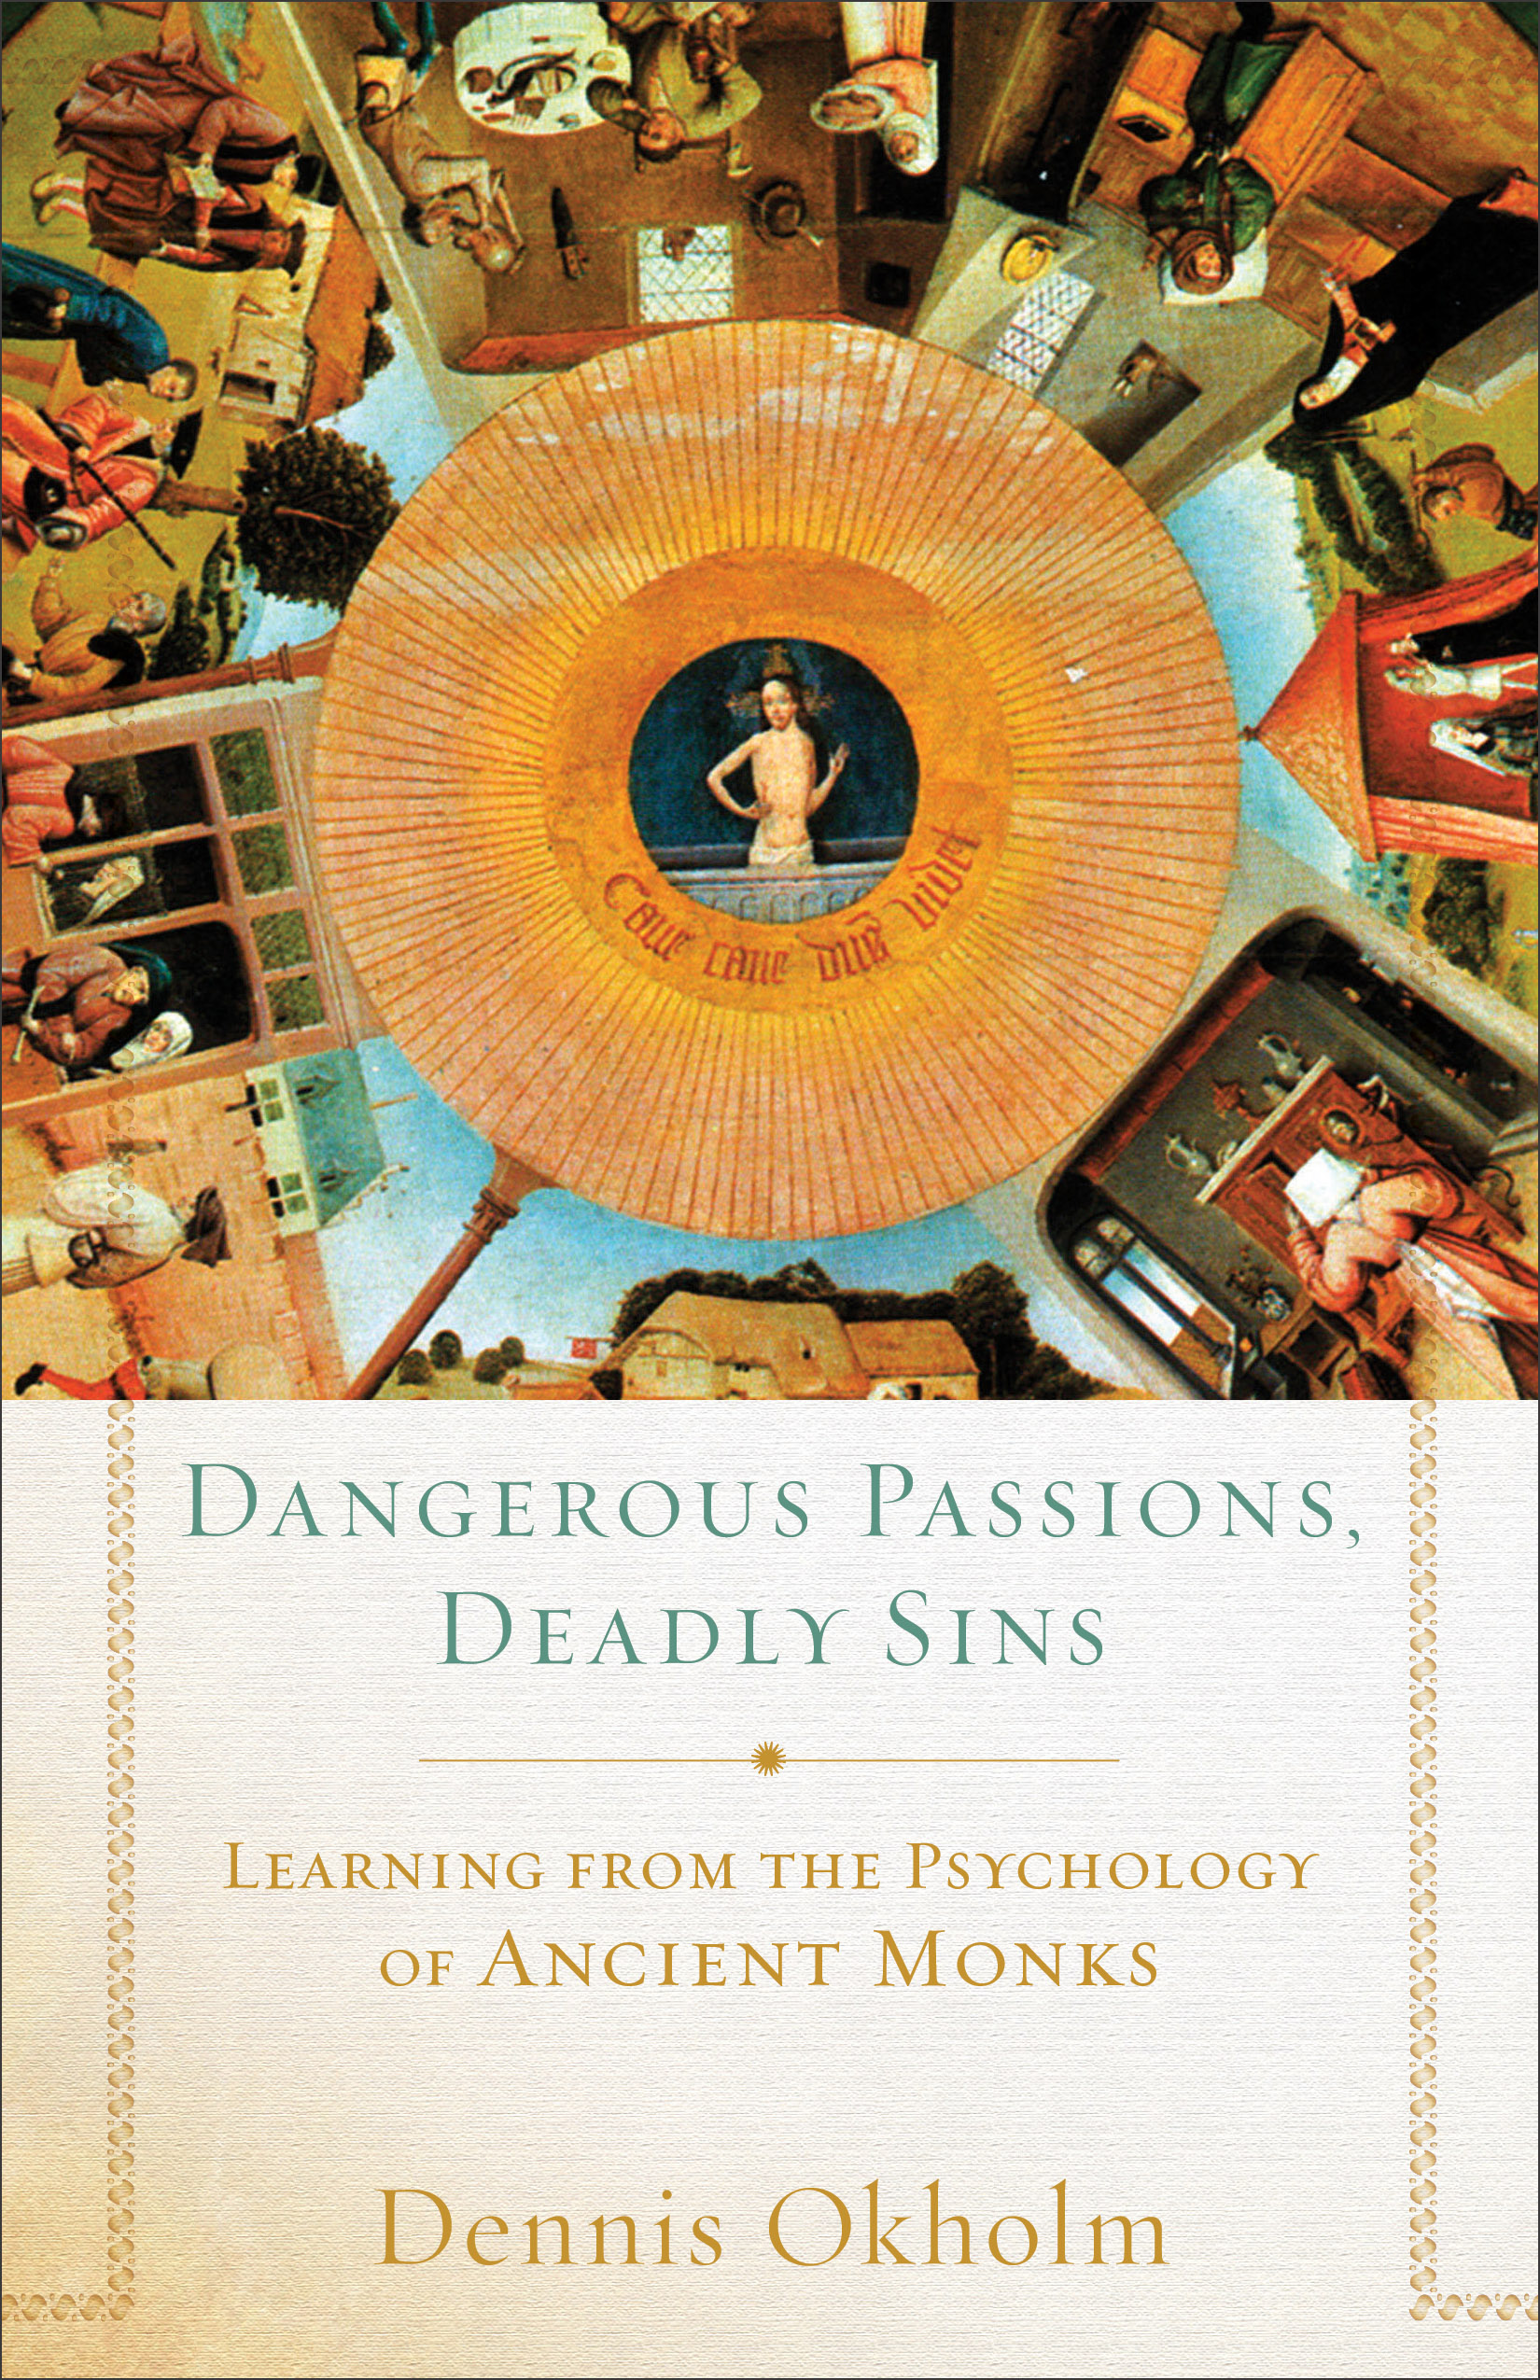 Dangerous Passions, Deadly Sins: Learning from the Psychology of Ancient Monks book cover